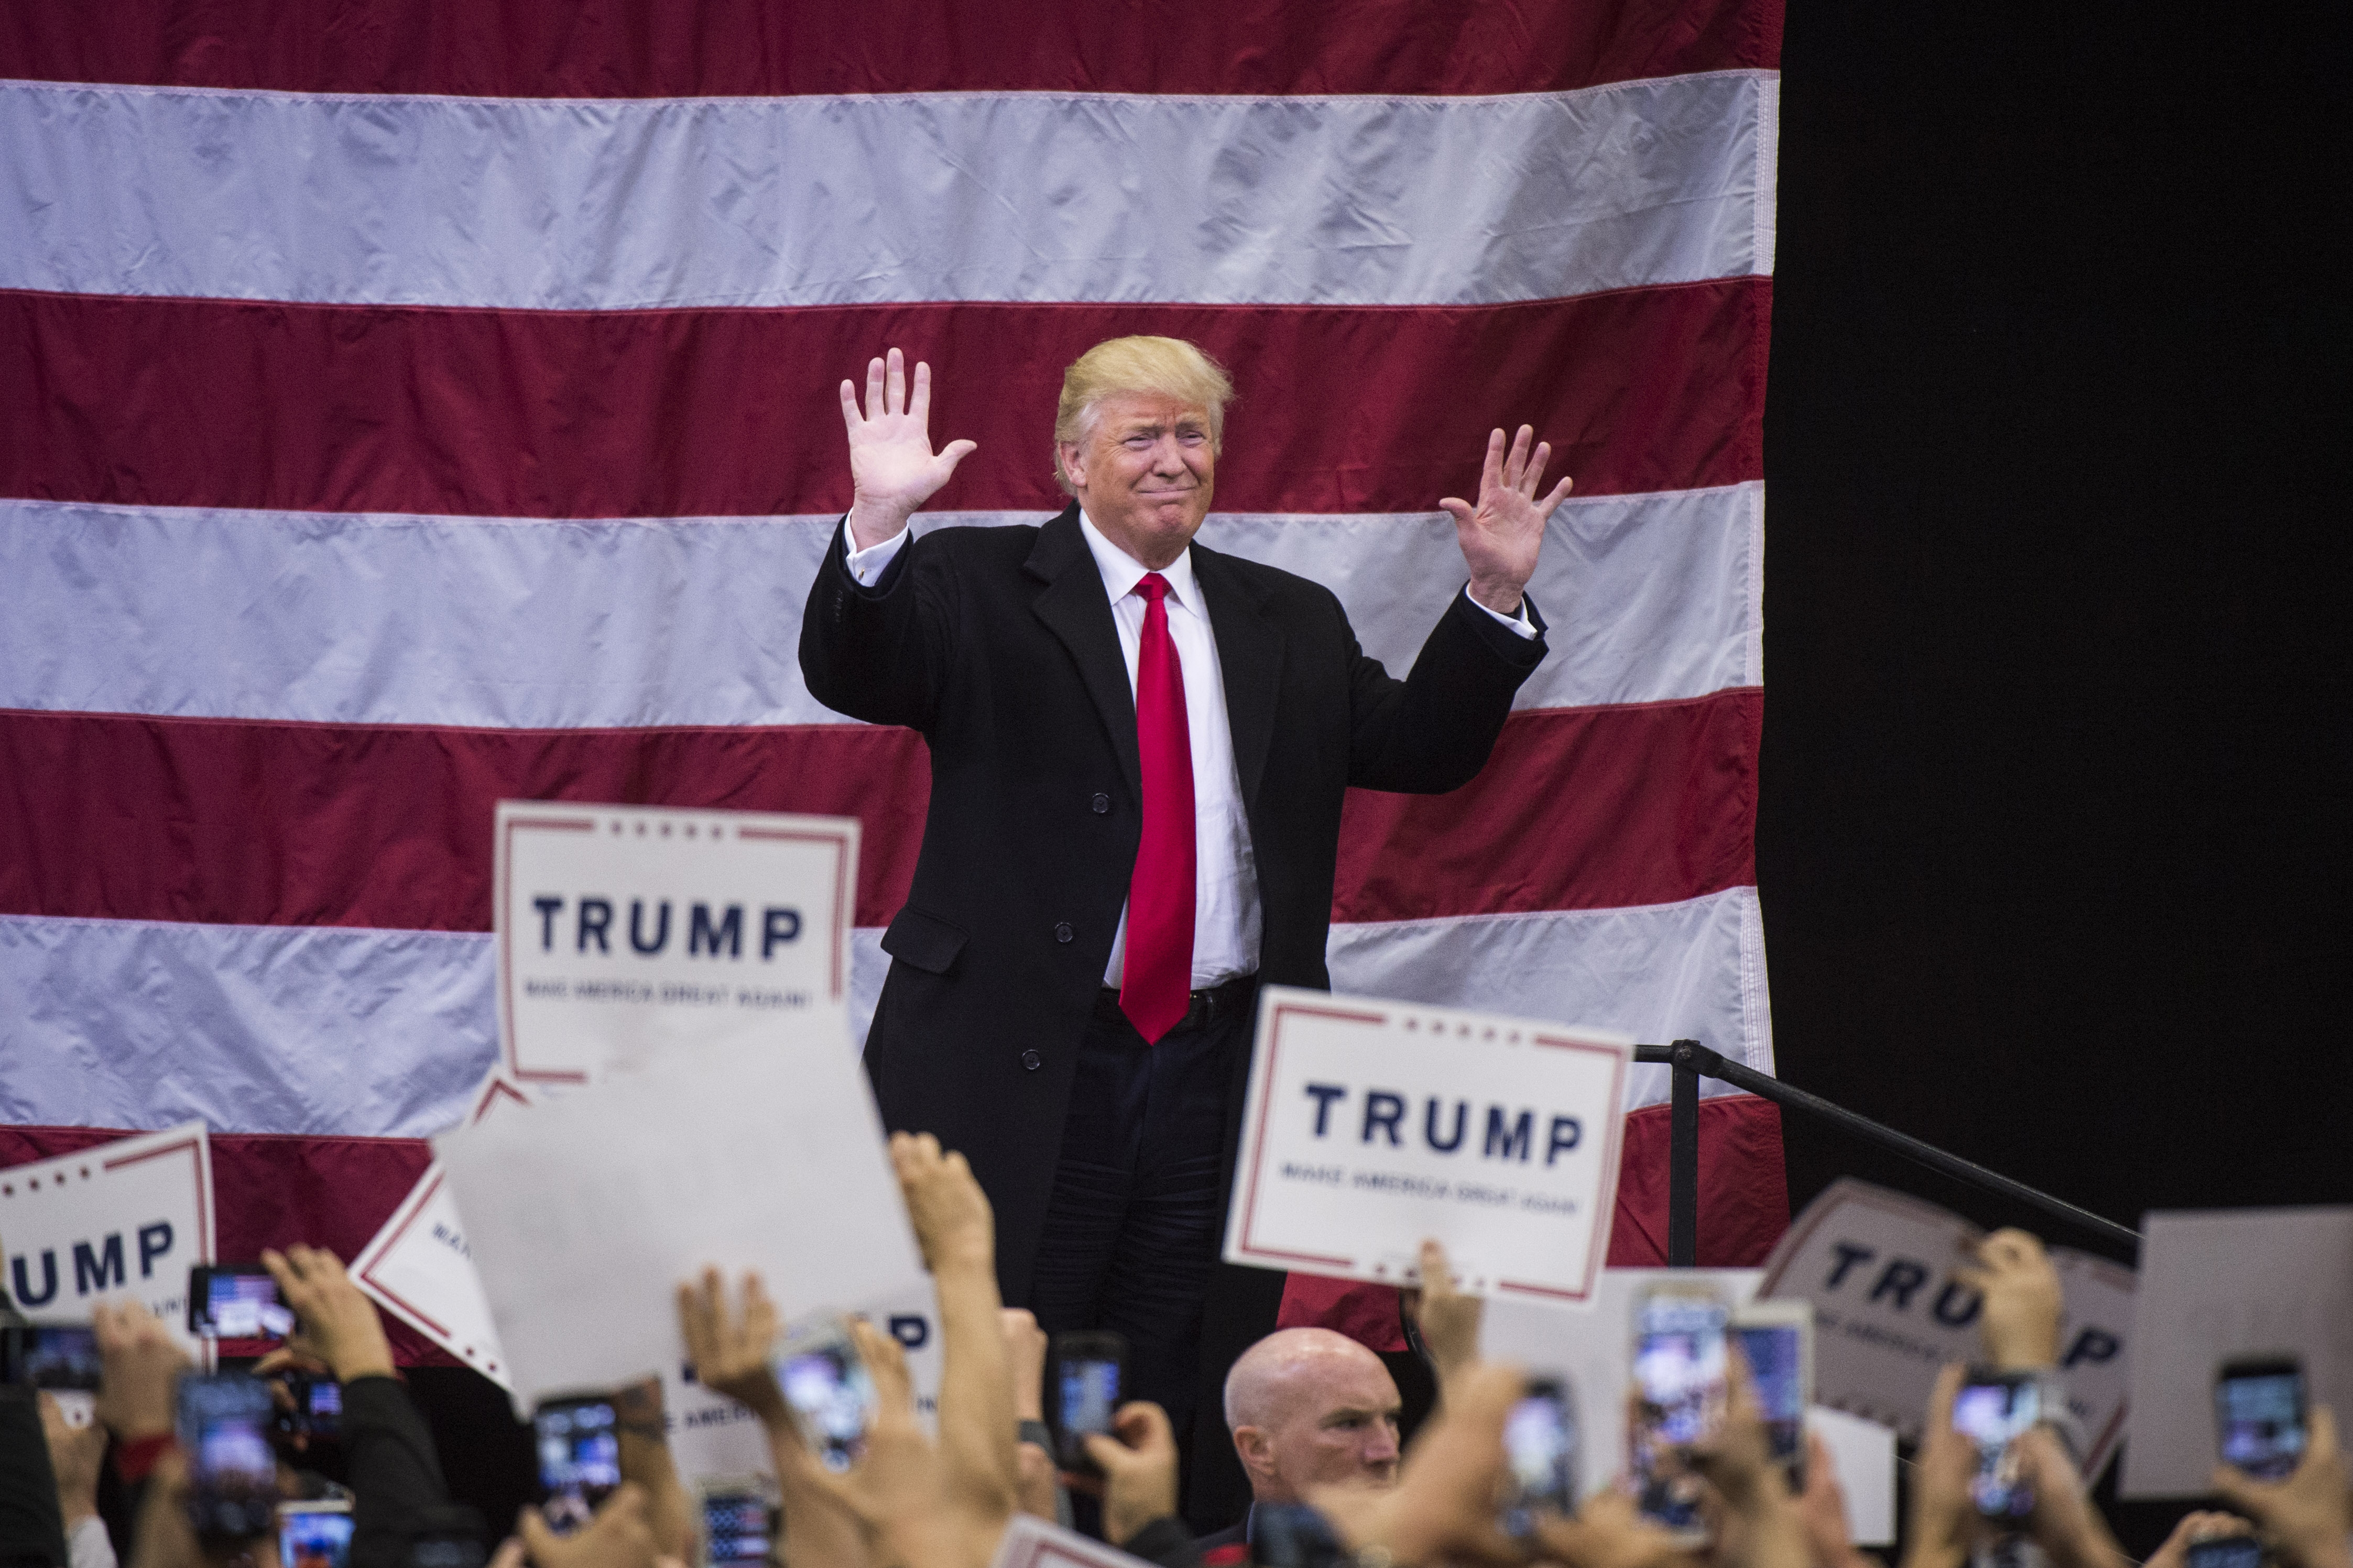 Republican presidential candidate Donald Trump is seen at a campaign event at Griffiss International Airport in Rome, N.Y., on April 12. (Washington Post)